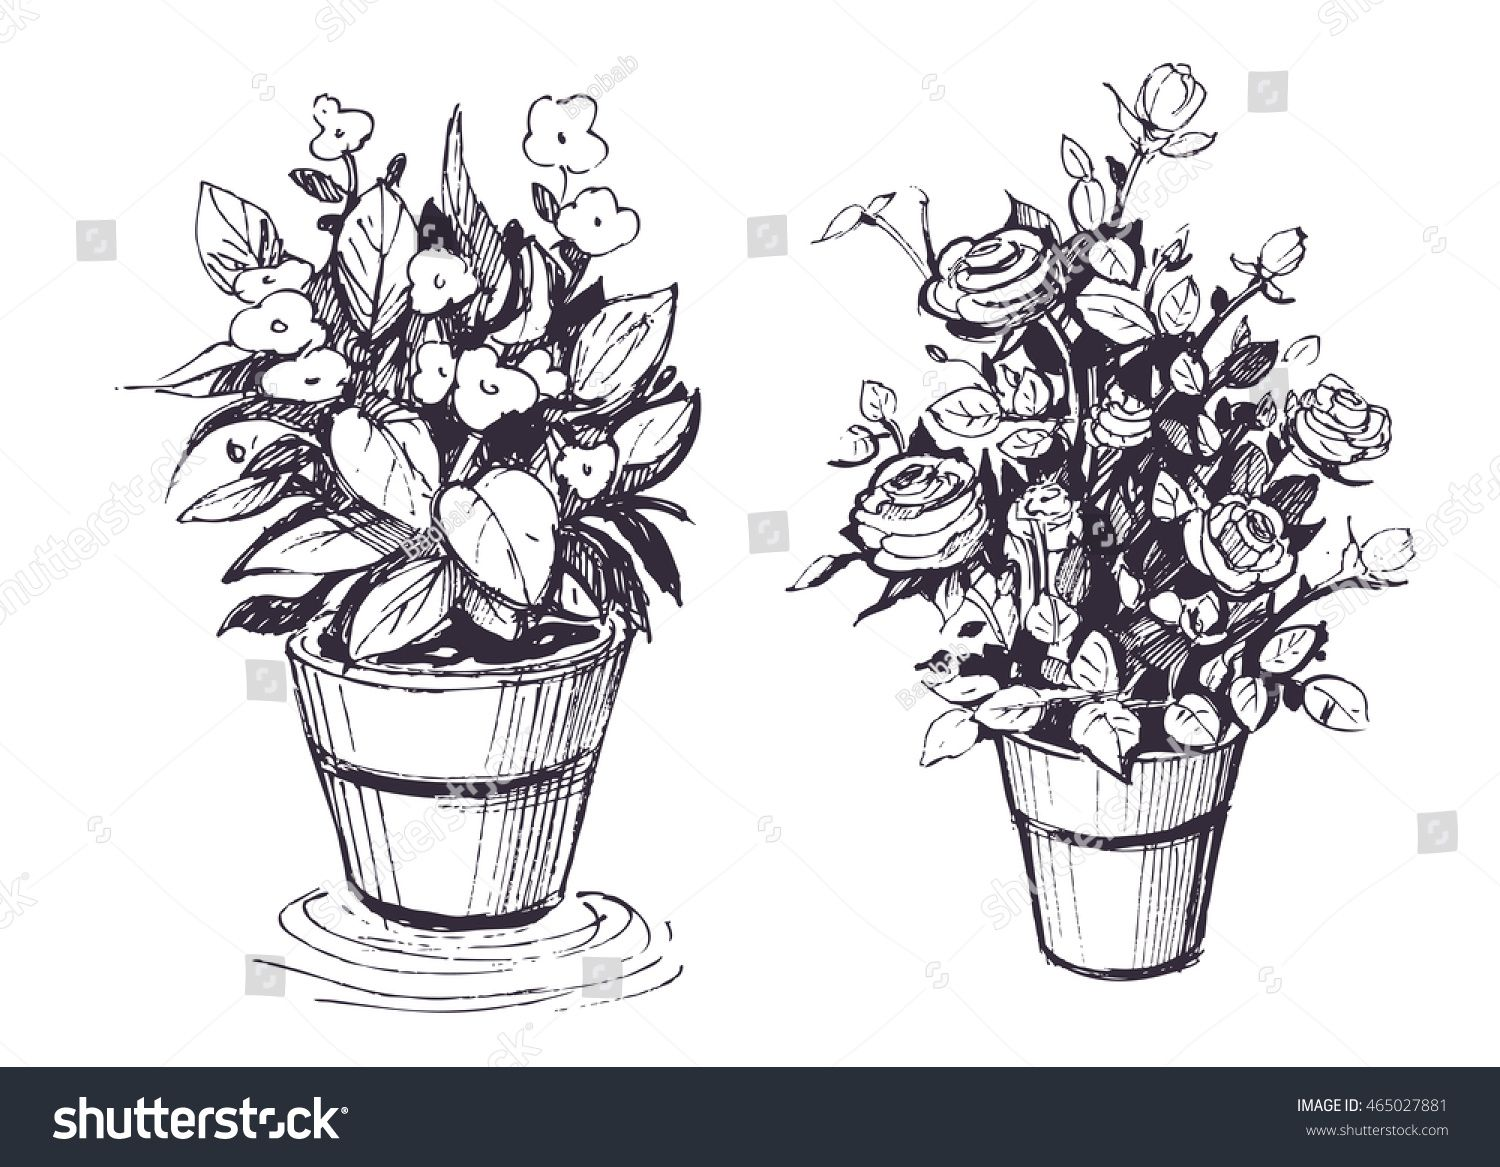 Image result for sketches of flowers in a flower pot